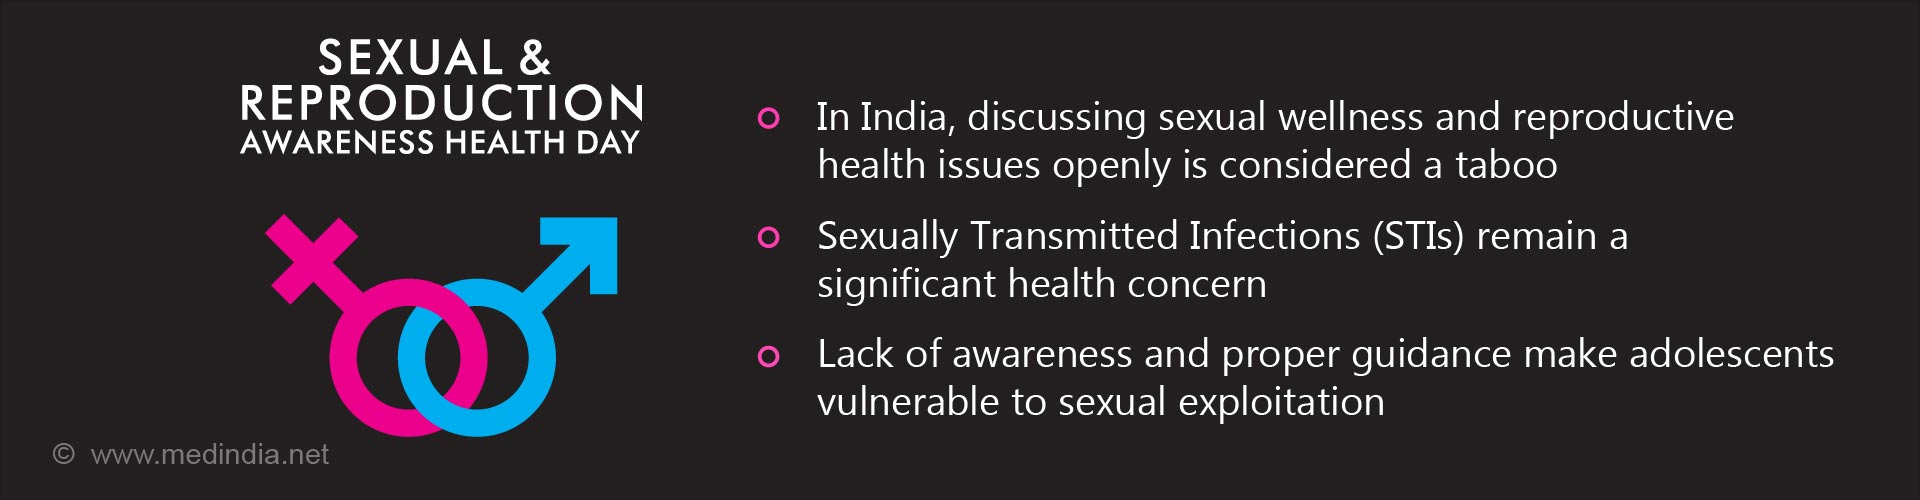 Sexual and Reproductive Health Awareness Day: Sexual Health Education